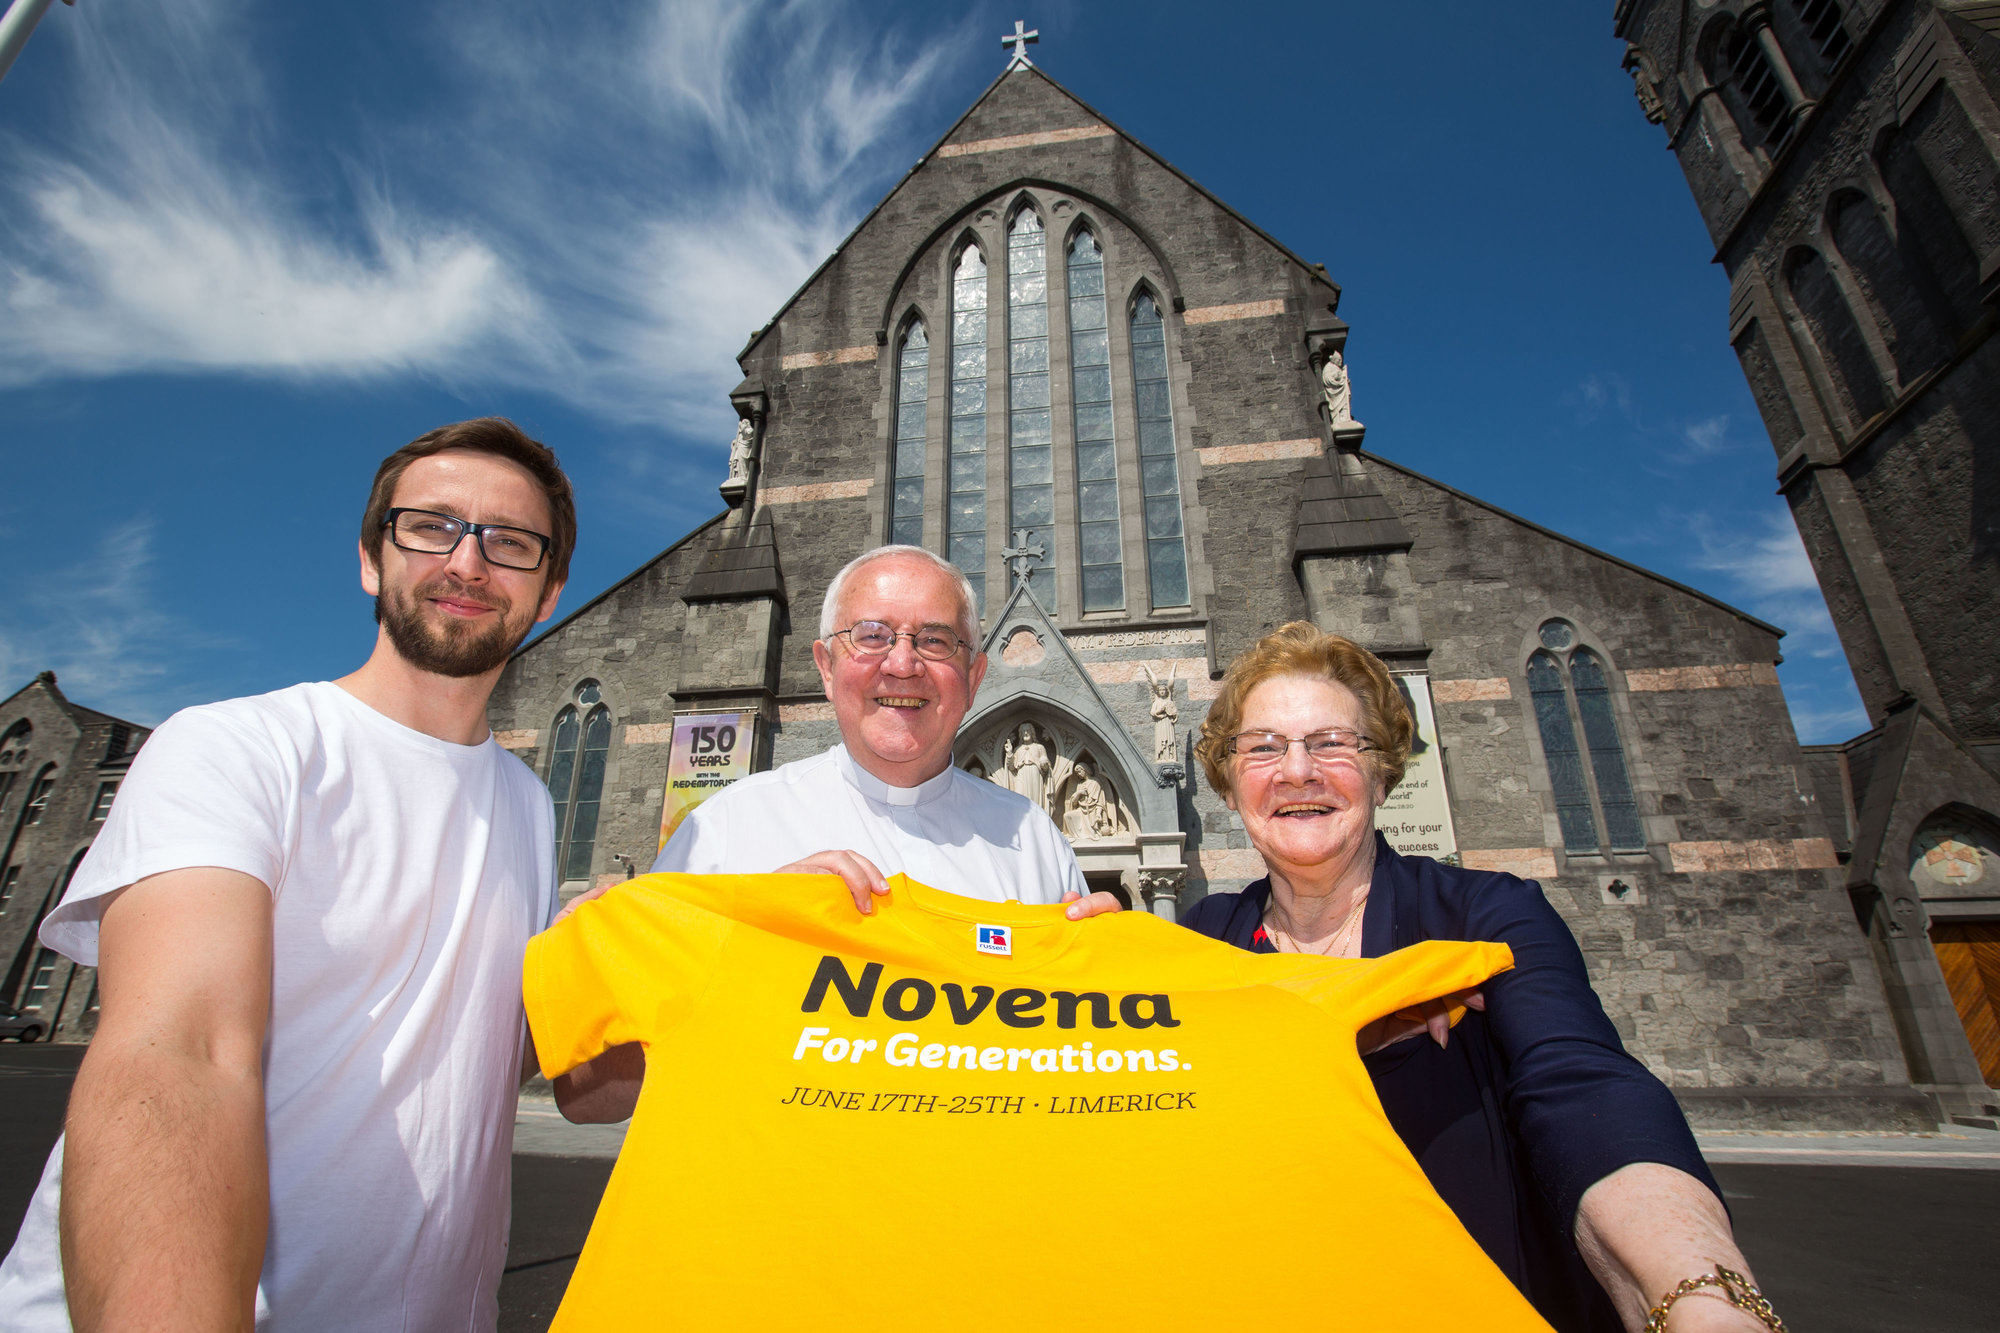 Limerick Novena 2016 celebrating 150 years of devotion